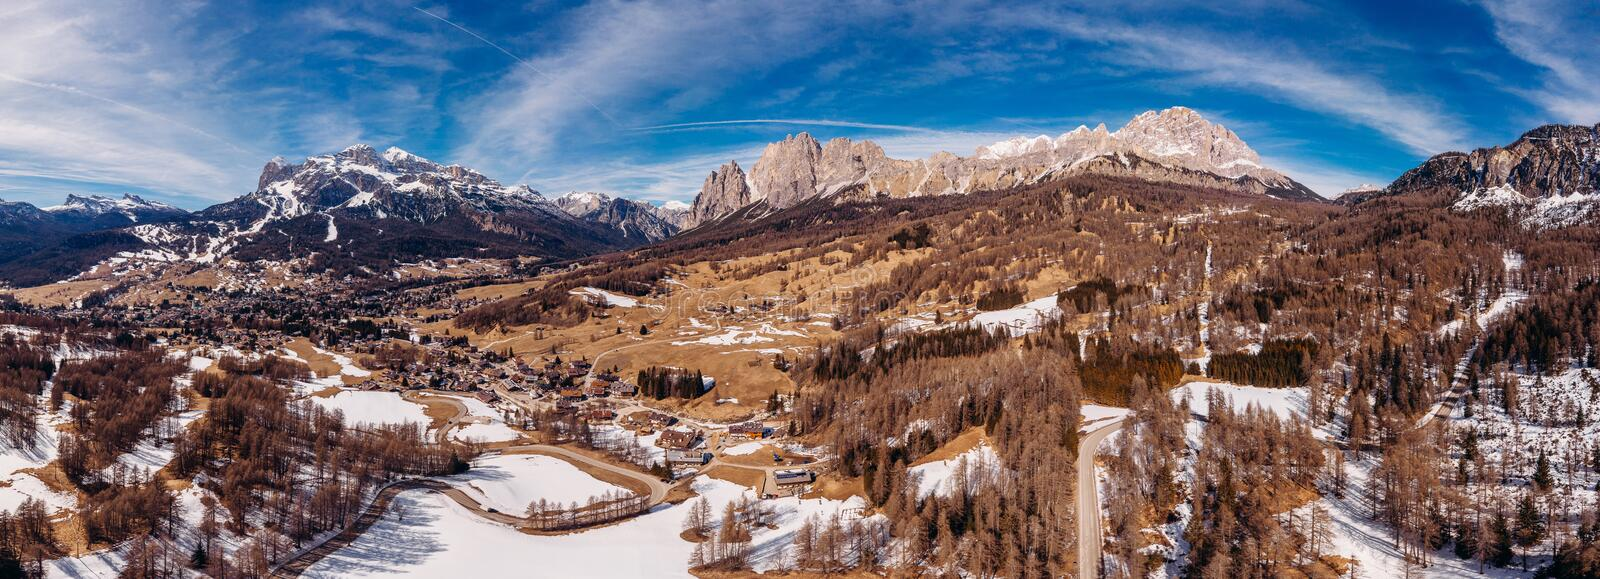 Panoramic photo Sunrise in Dolomites mountains South Tyrol, Italy. Aerial top view stock photo